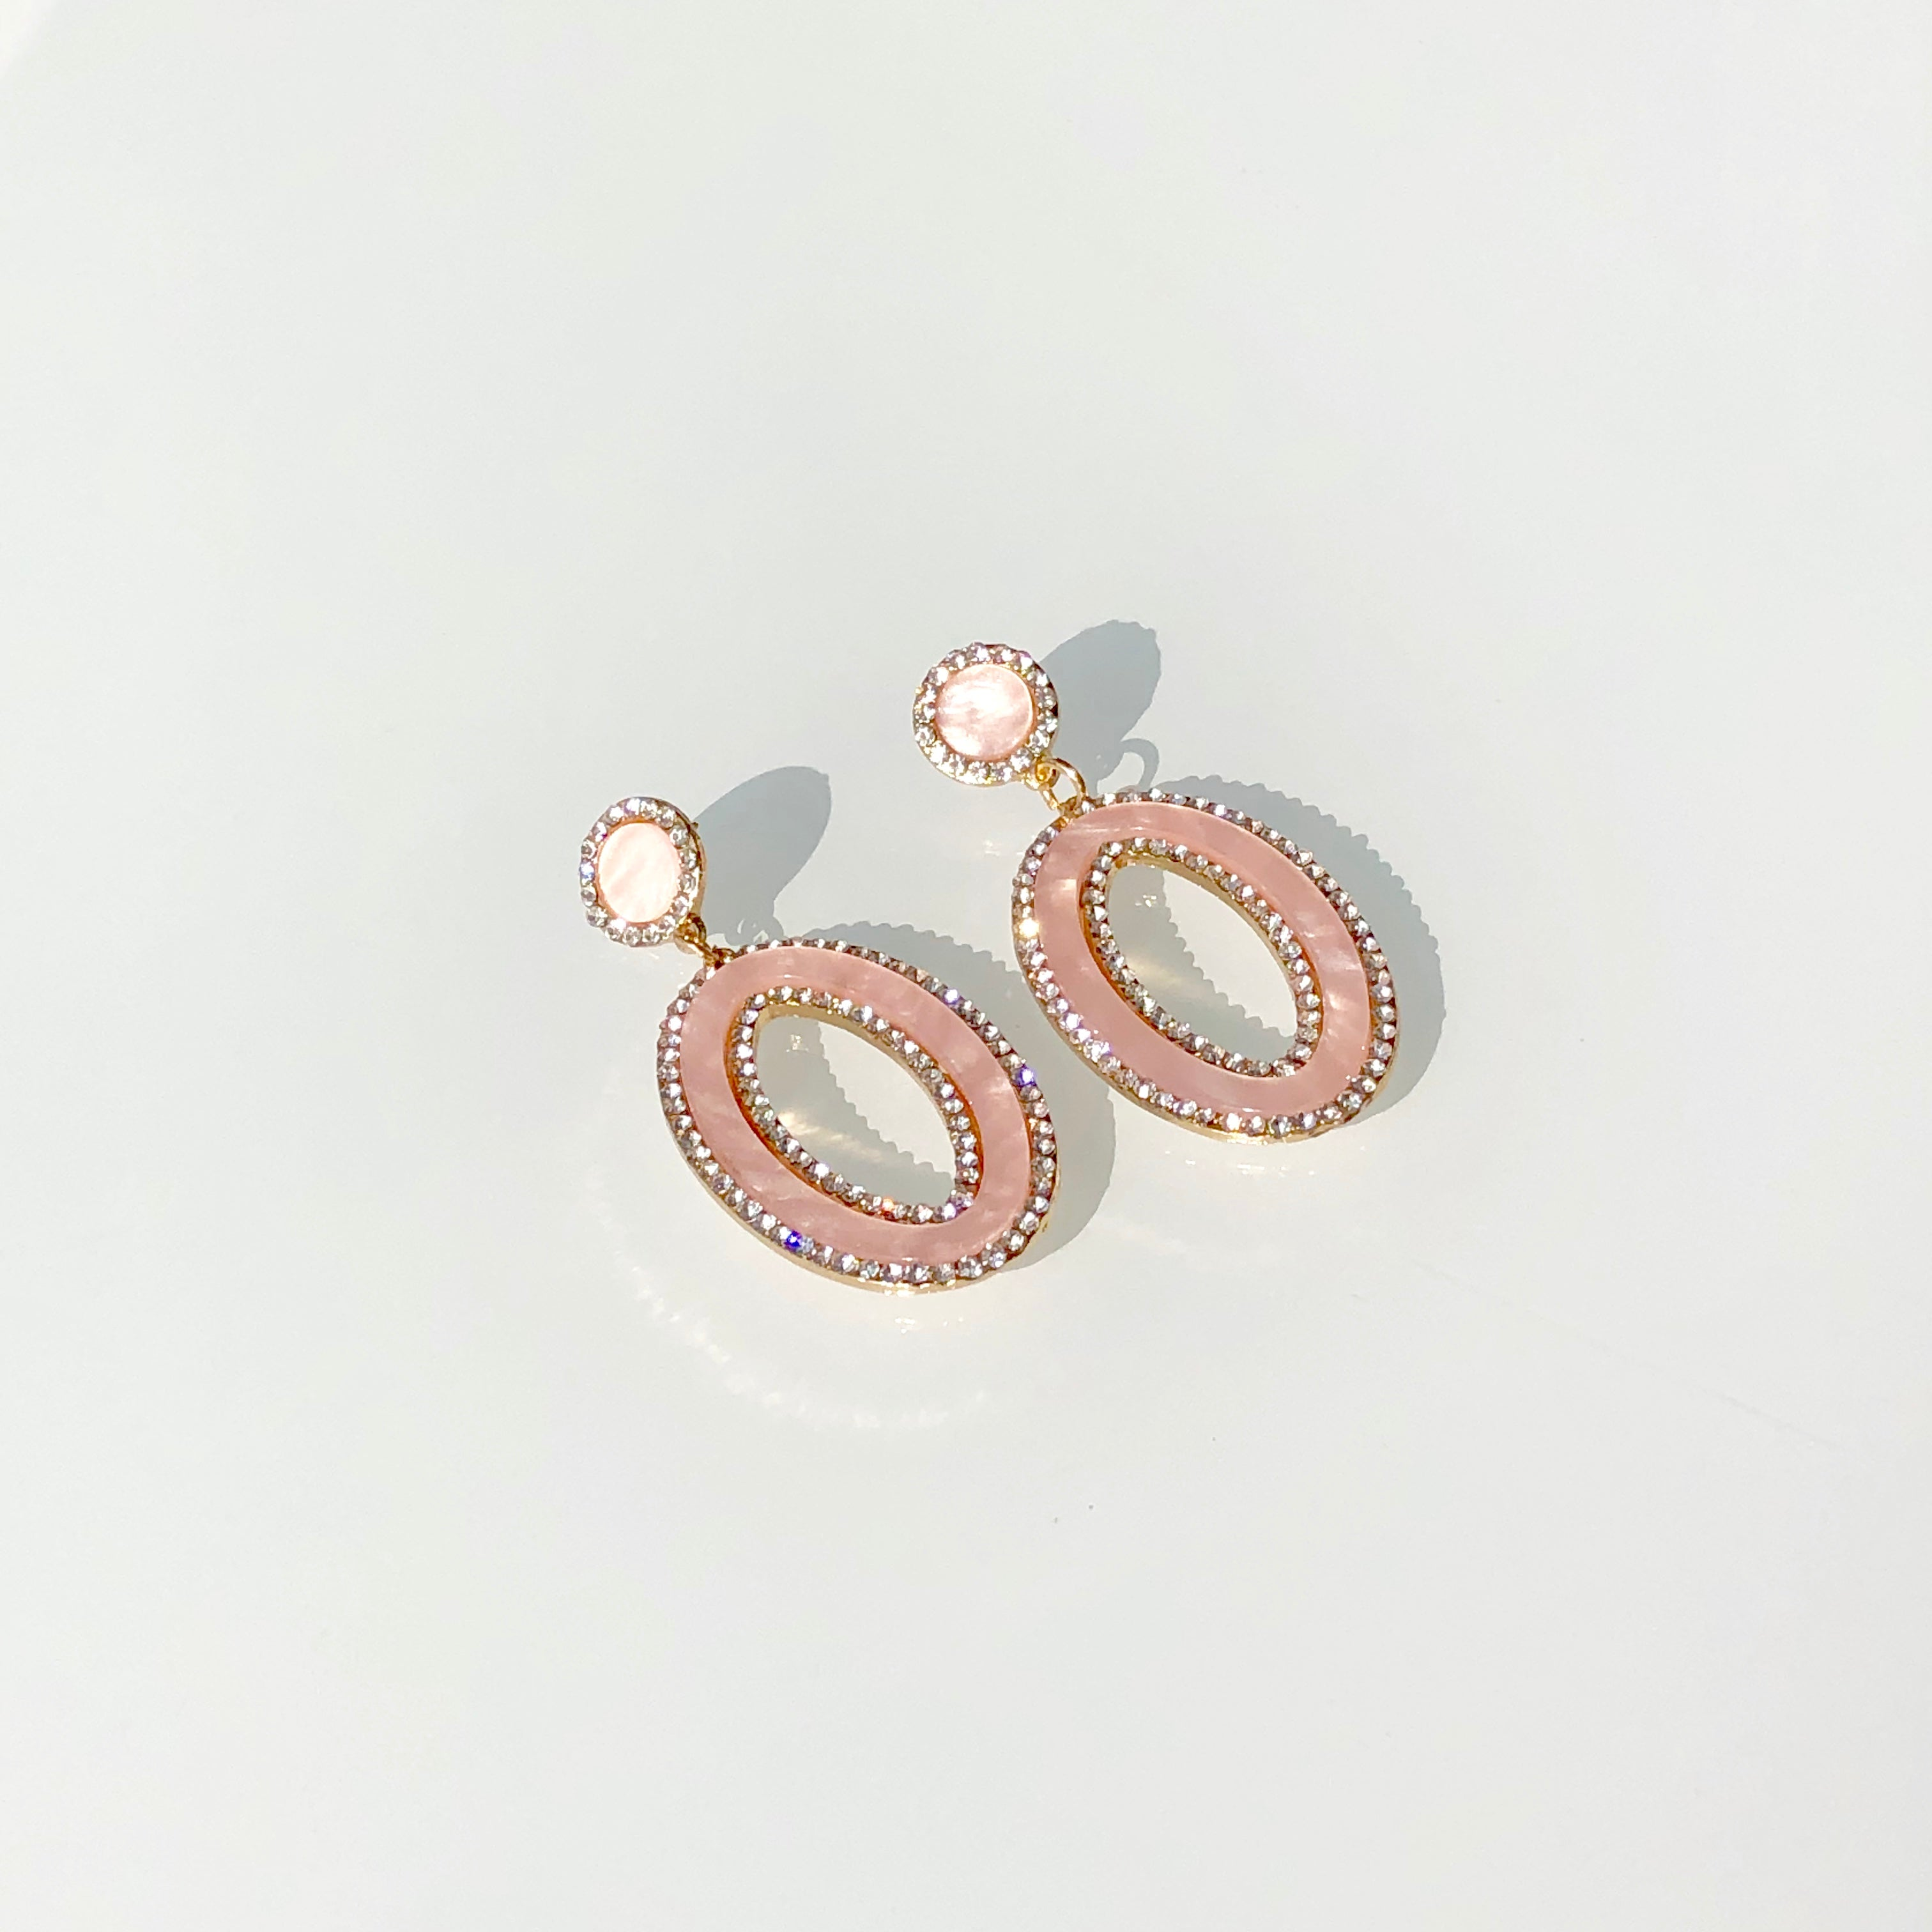 pink, colorful, marble, acrylic, pave, large, statement, organic, stylish, chic, earrings, trendy, influencer